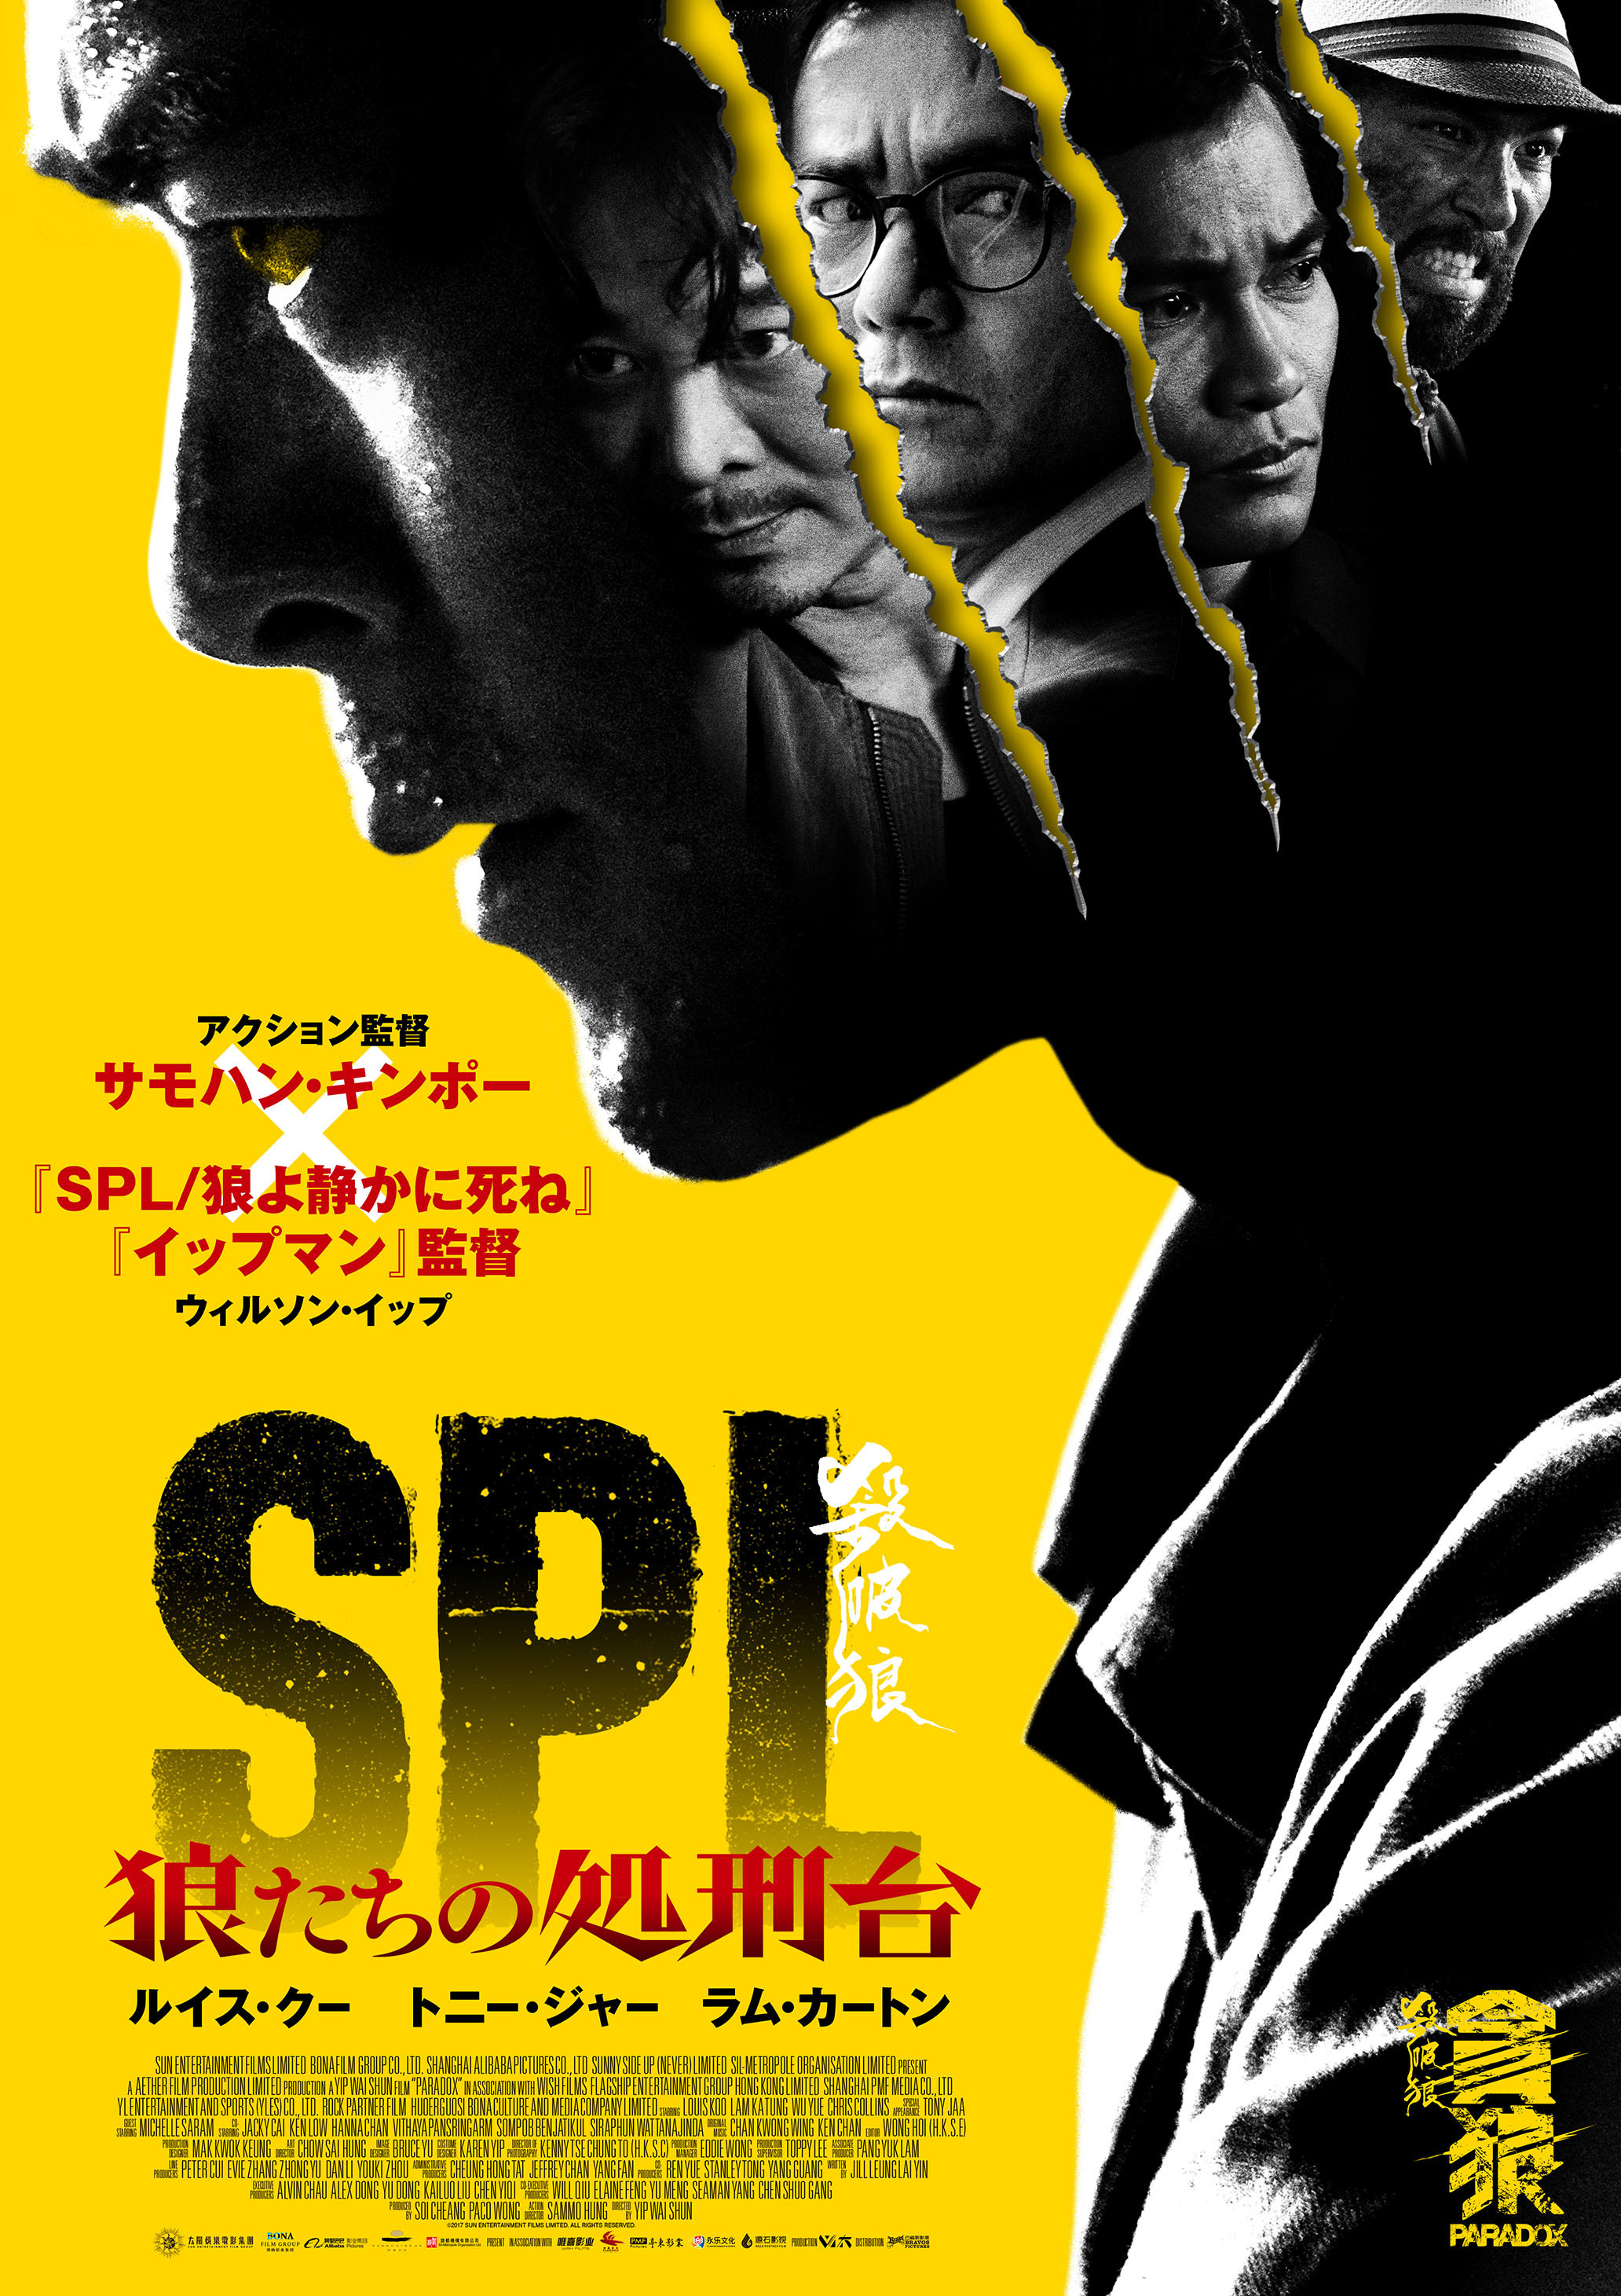 『SPL 狼たちの処刑台』第一弾ポスター (C)2017 SUN ENTERTAINMENT FILMS LIMITED. ALL RIGHTS RESERVED.